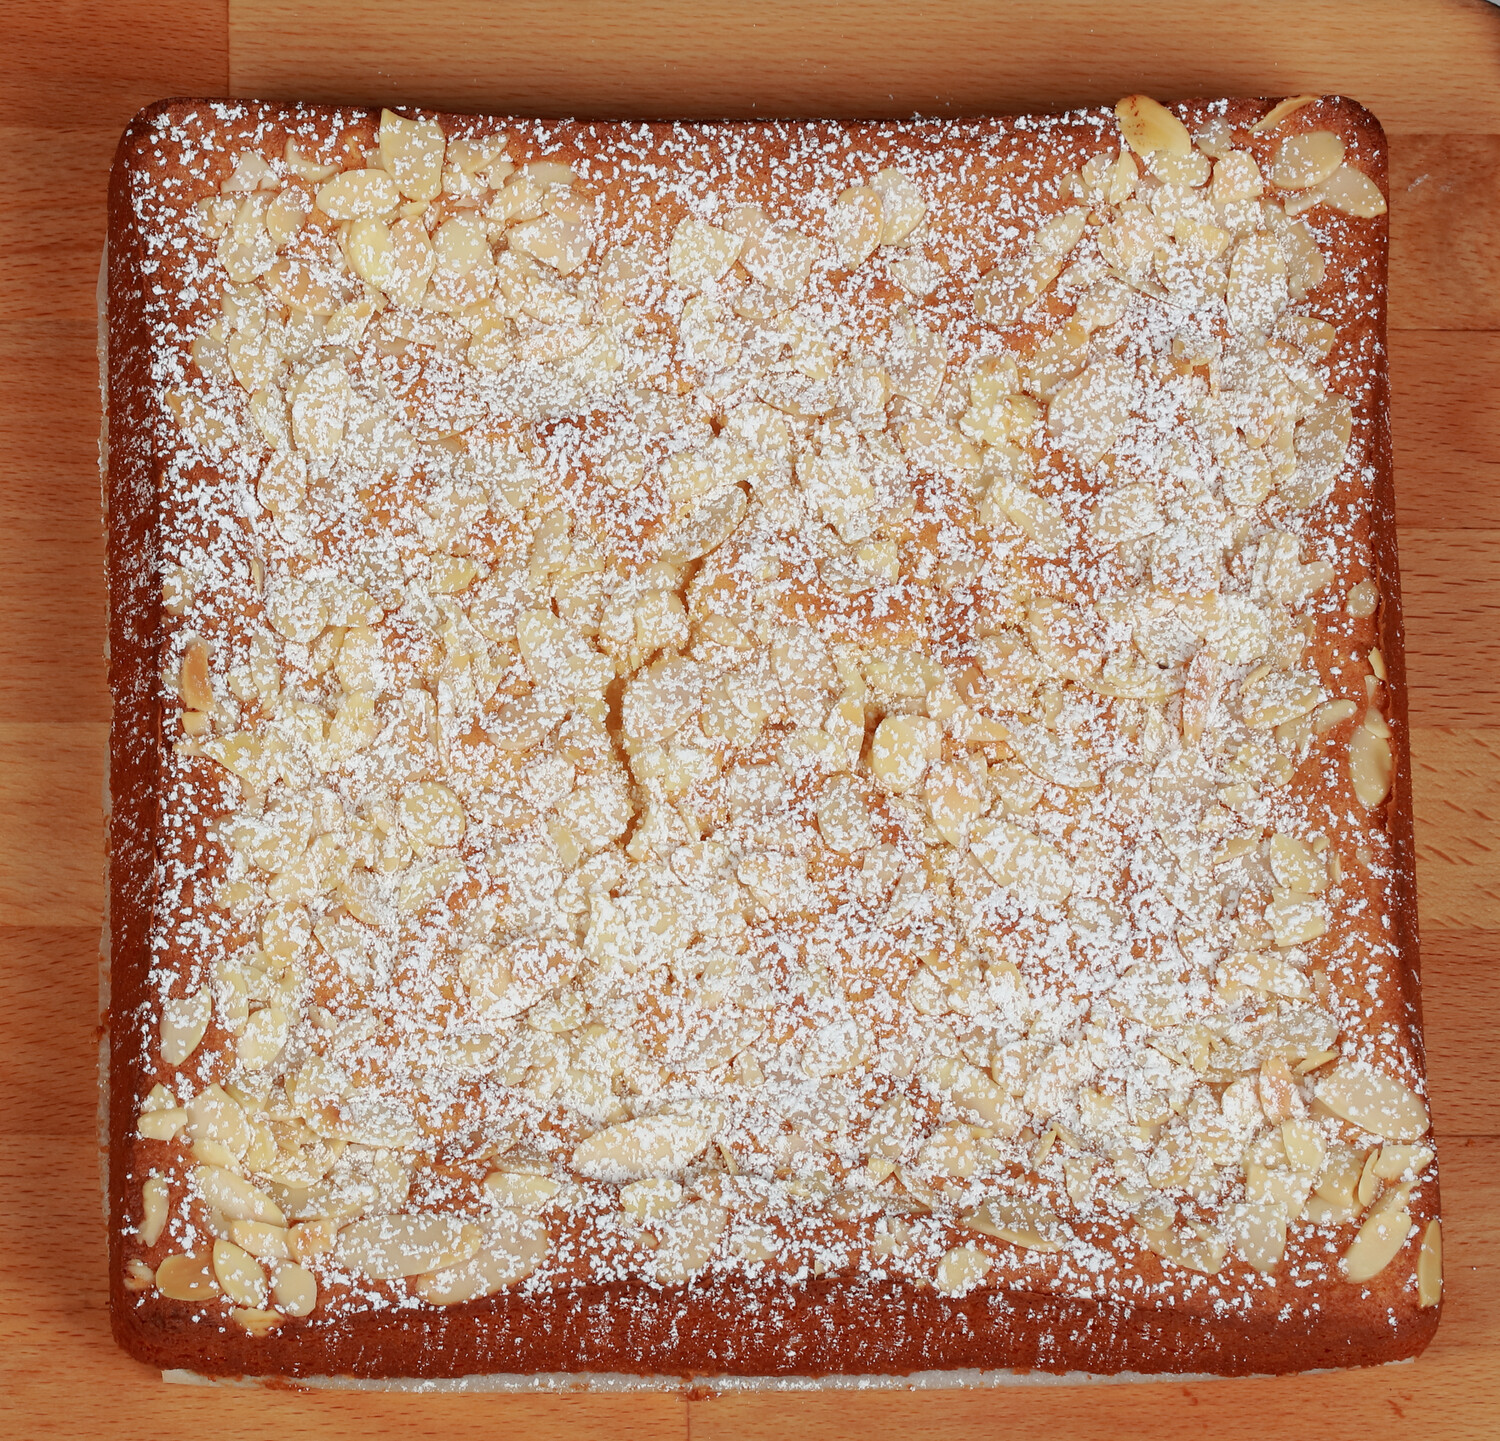 Lemon, Almond and Ricotta Cake, Gluten free